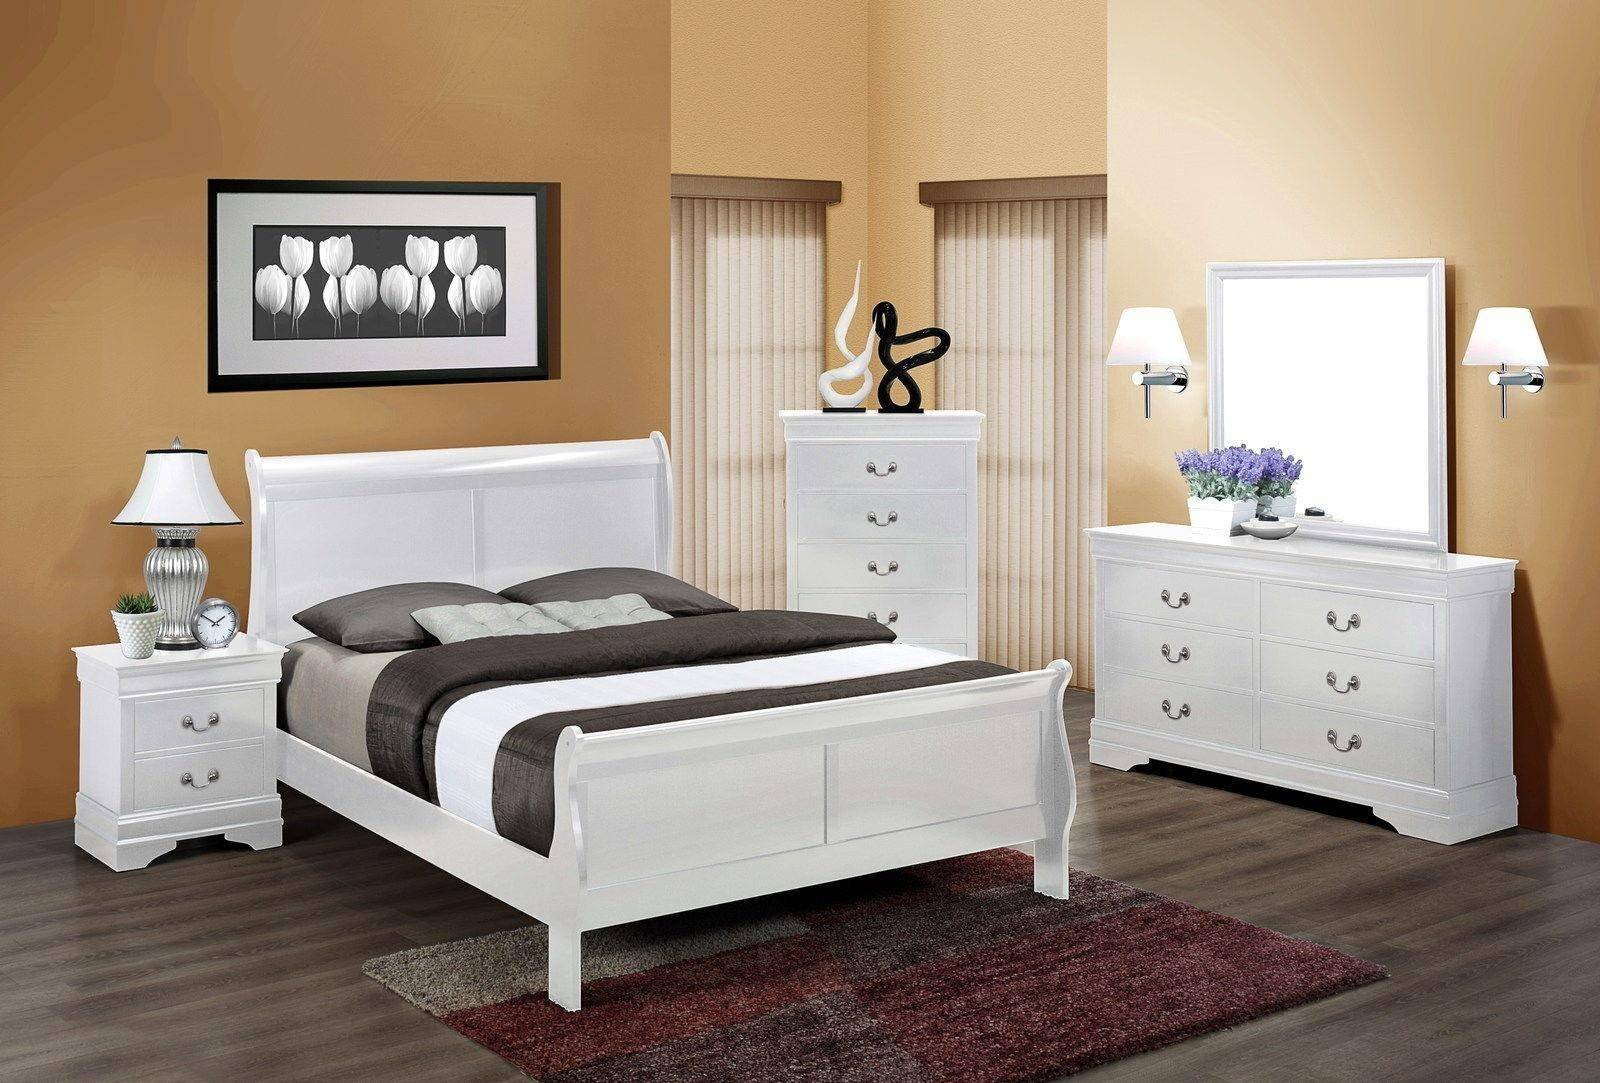 Twin Bedroom Set for Sale New Crown Mark B3600 Louis Philip Contemporary White Finish Twin